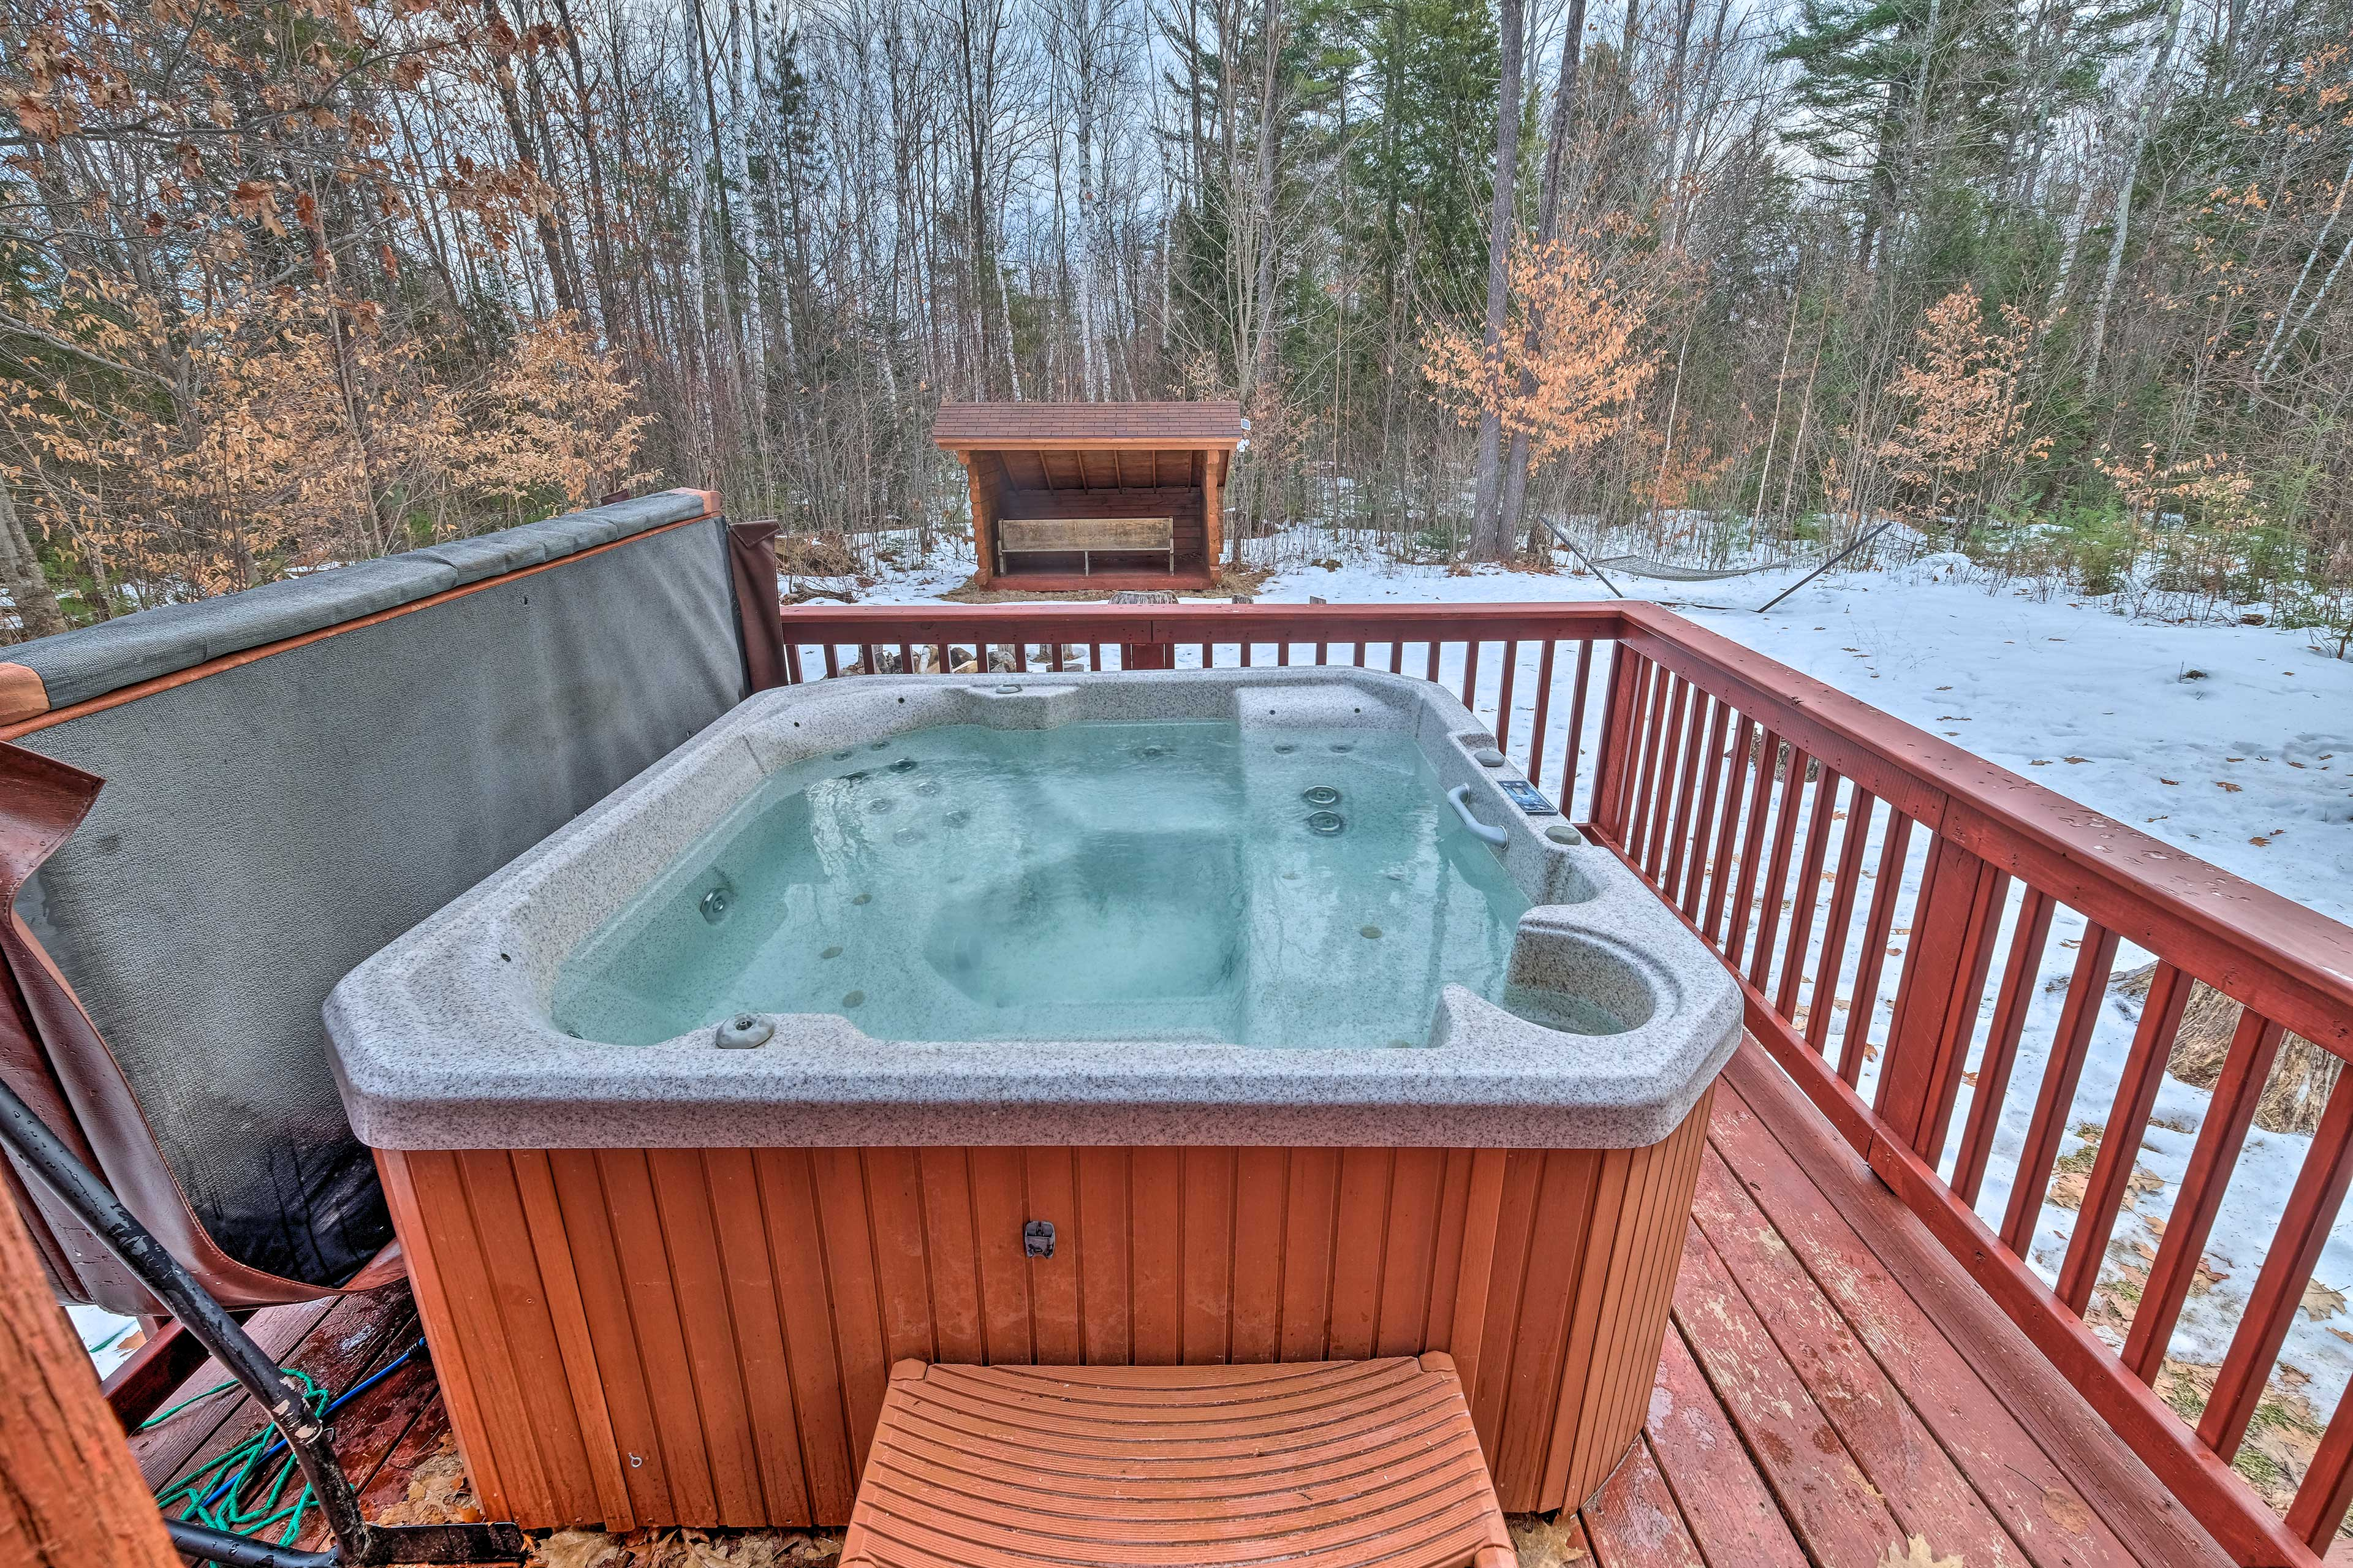 Relax in the private hot tub under the starry sky.